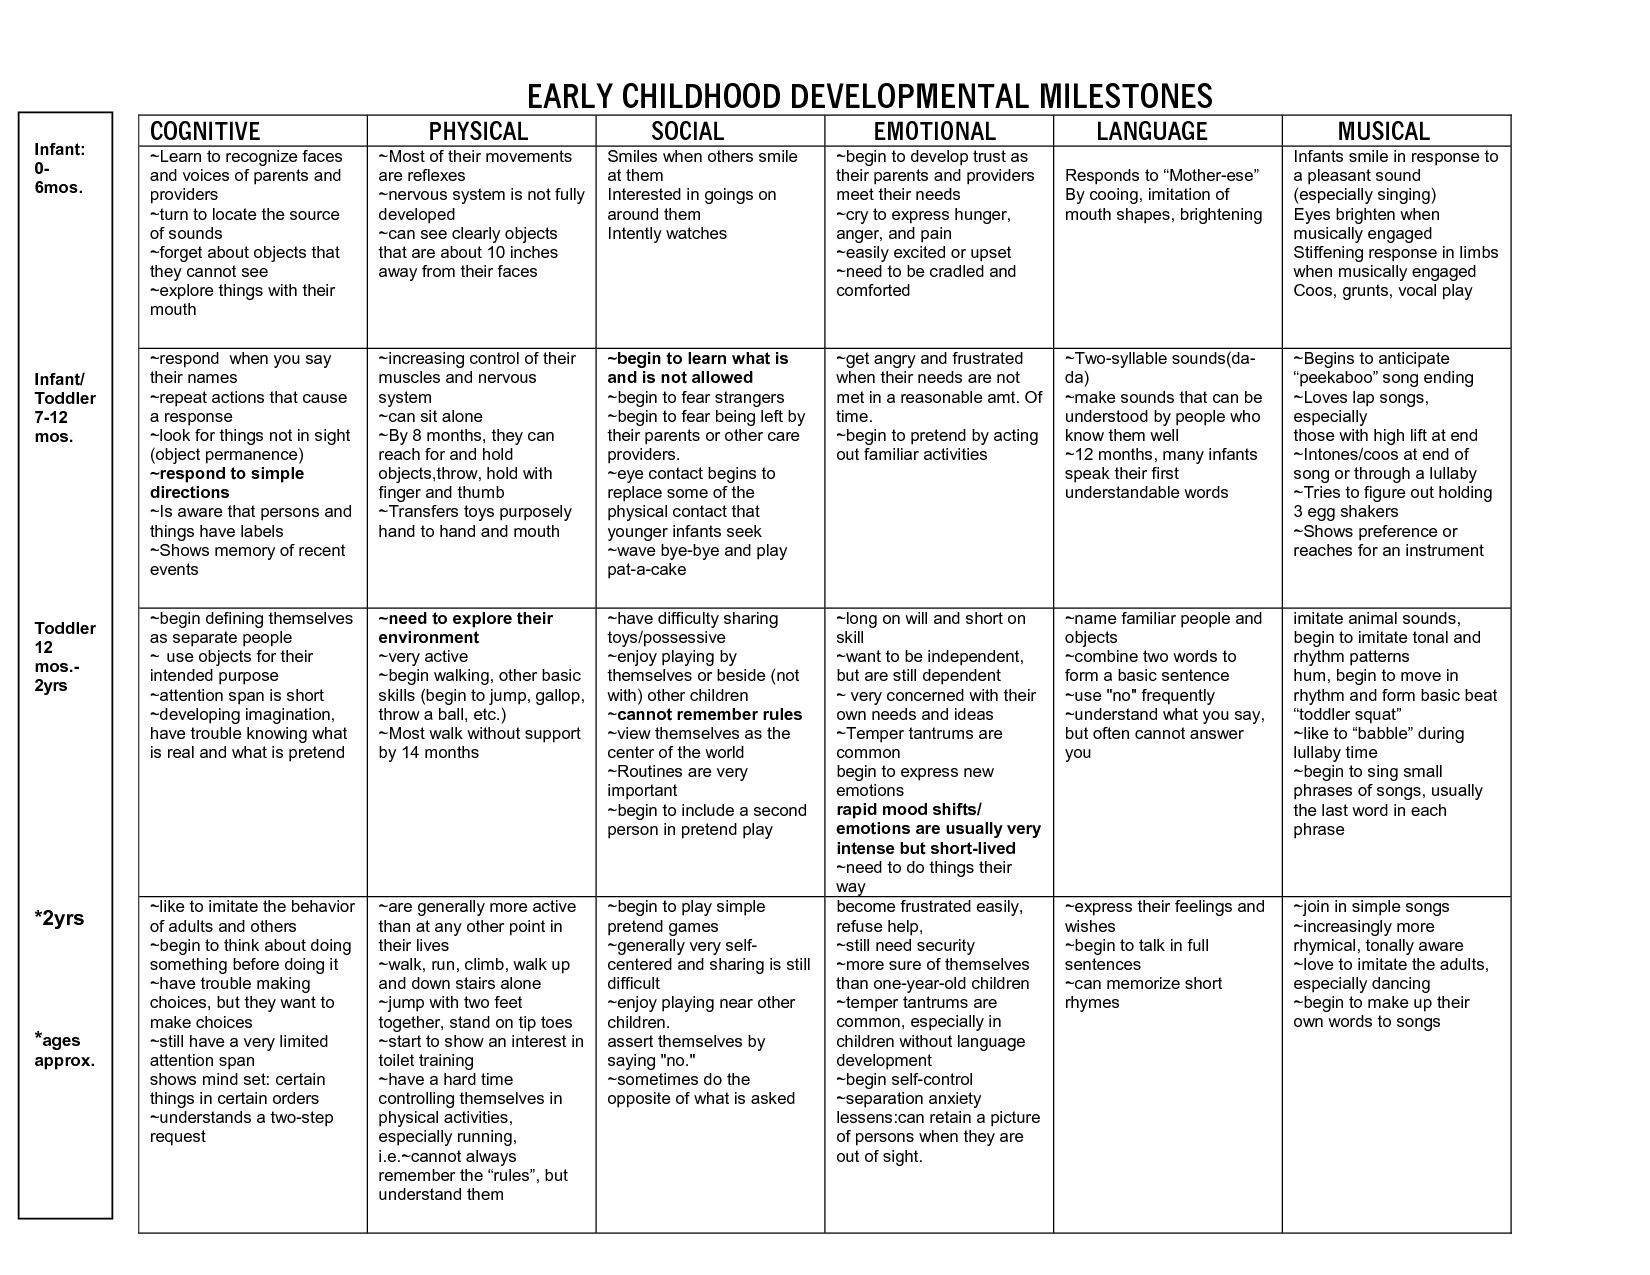 developmental psychology Developmental psychology focuses on the development of individuals across their lifespan within the context of family, peer groups, child-care and after-school programs, schools, neighborhoods, and larger communities and society it considers the well-being of children, youth, and adults, vis-a-vis.